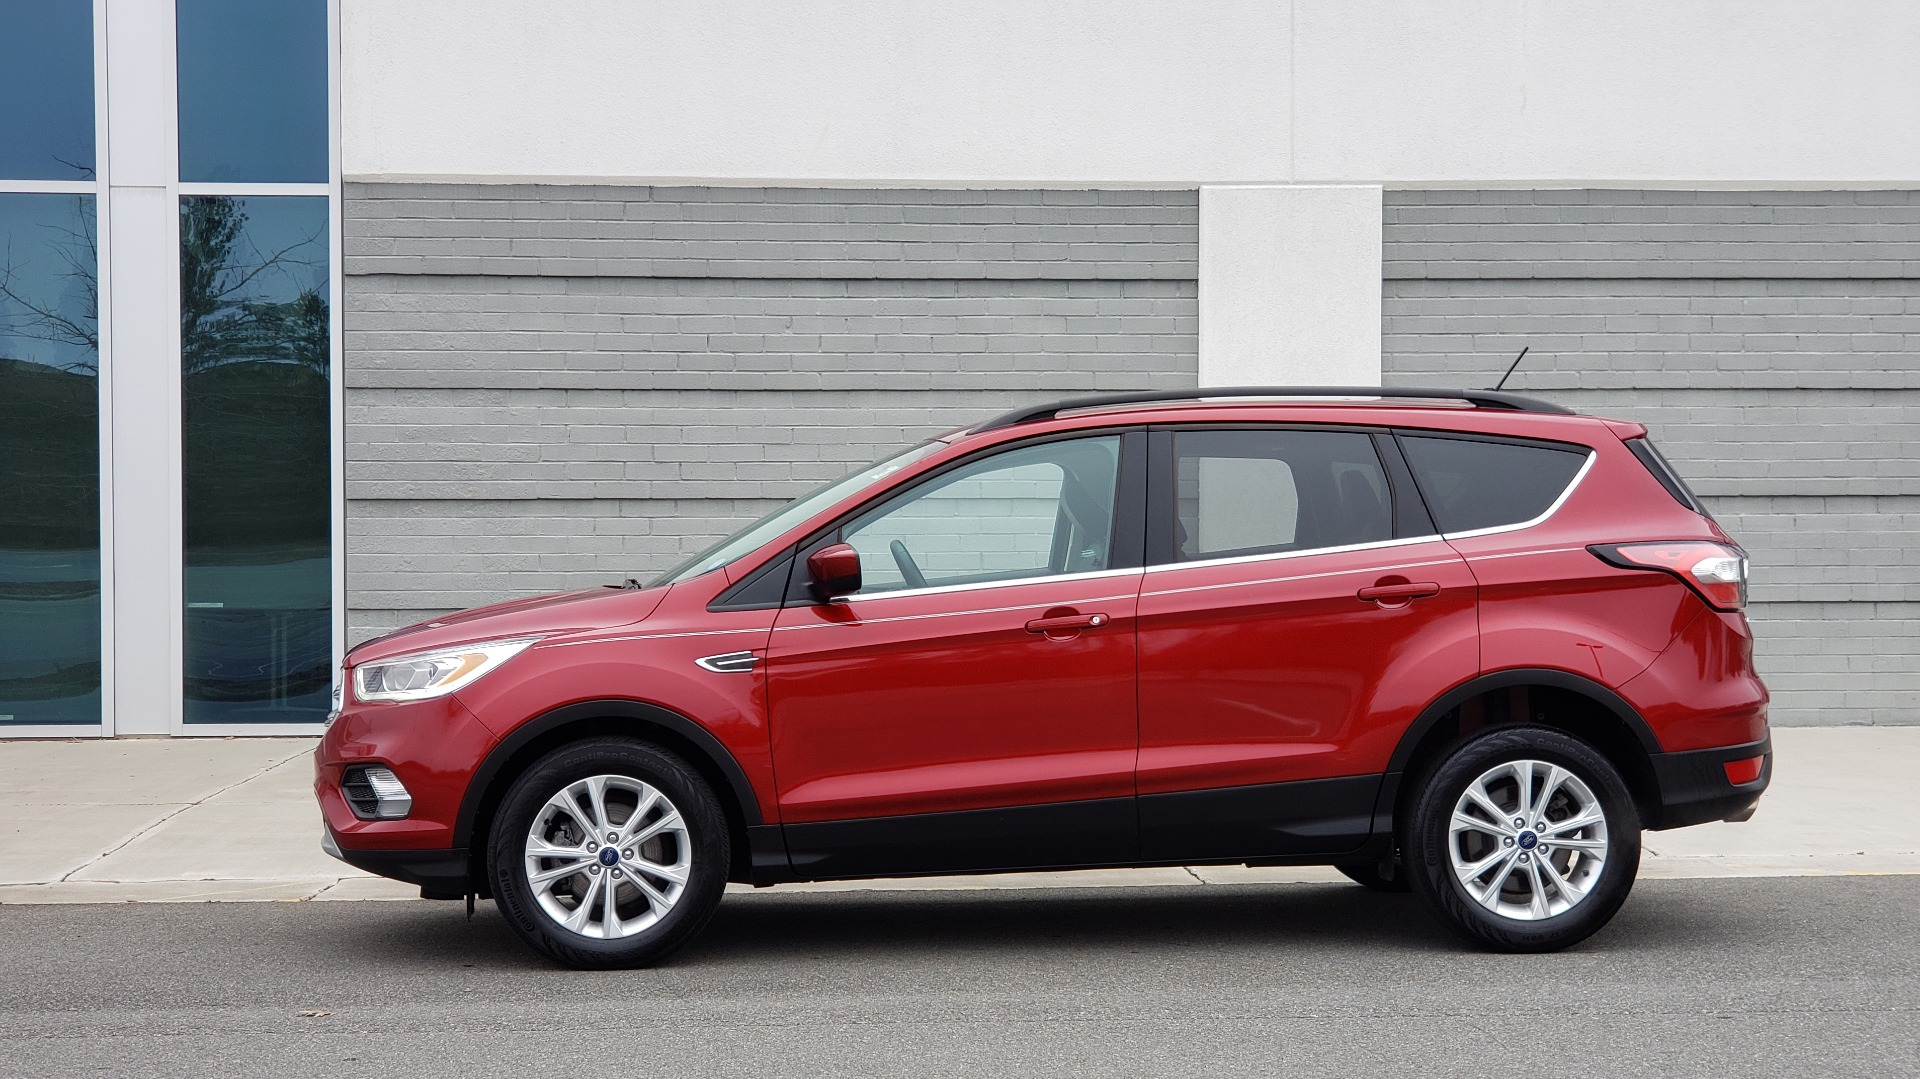 Used 2018 Ford ESCAPE SEL / FWD / 1.5L ECOBOOST / PANO-ROOF / REARVIEW for sale Sold at Formula Imports in Charlotte NC 28227 4